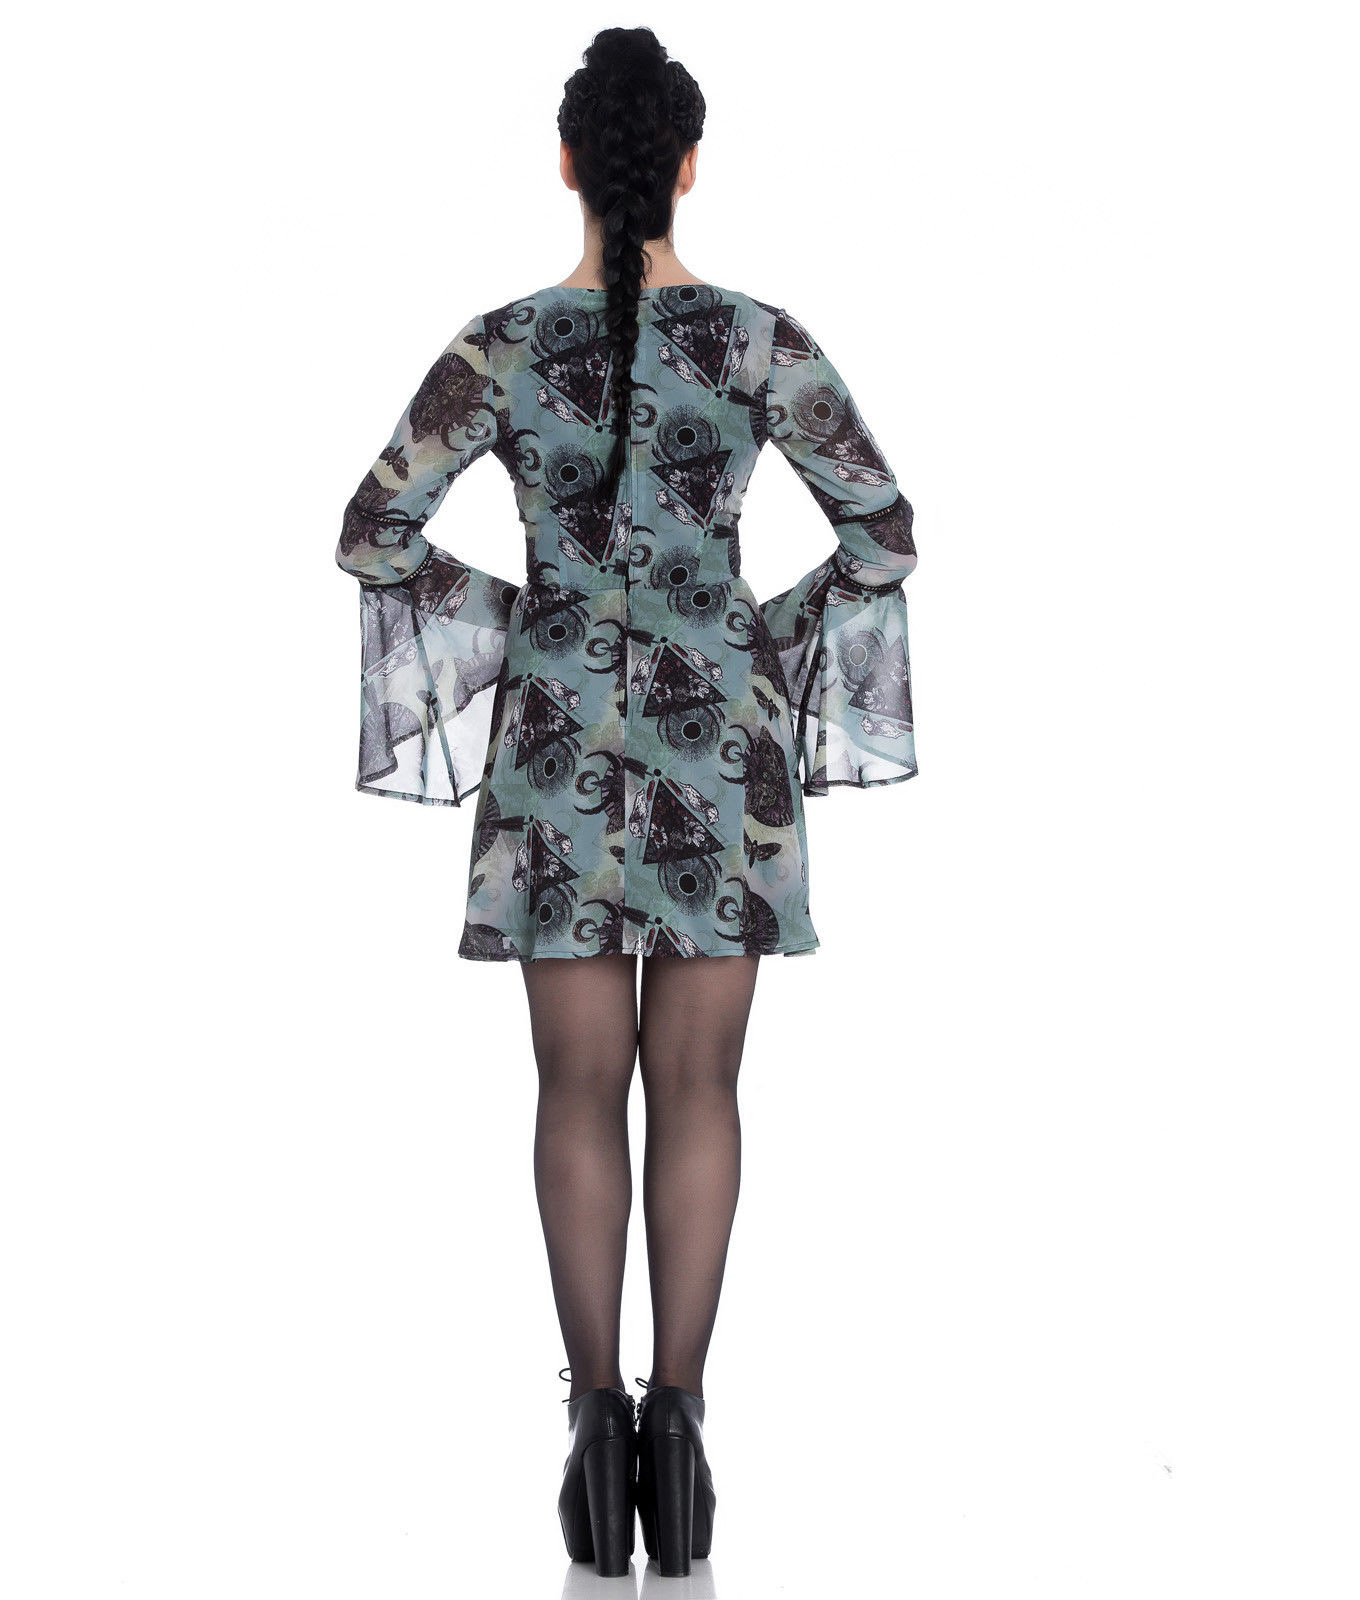 Hell-Bunny-Alchemy-Goth-Floaty-Witch-Mini-Dress-AFTER-DEATH-Teal-Green-All-Sizes thumbnail 21